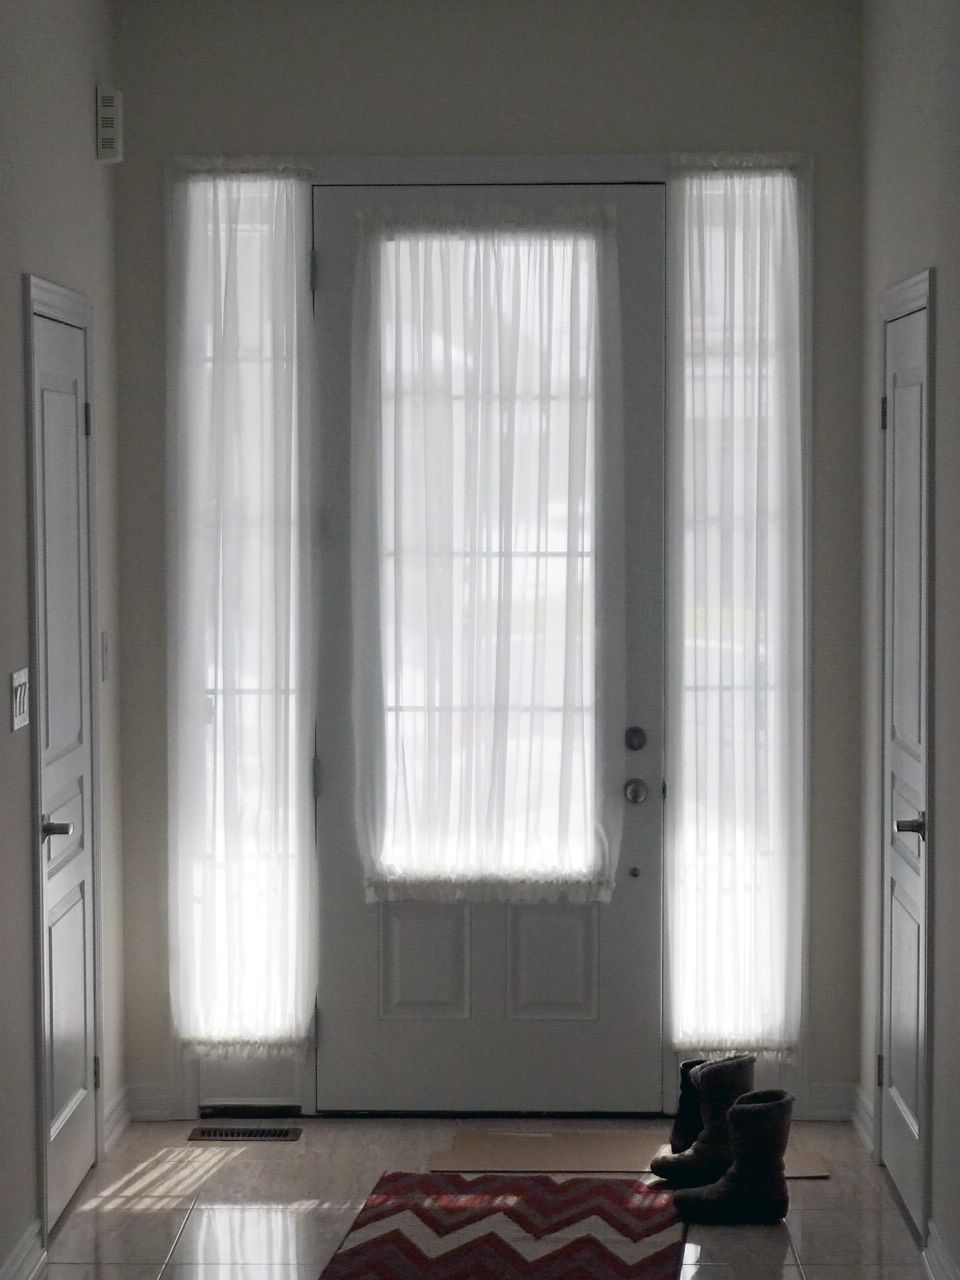 sidelight curtains, sidelight panel curtains, sidelight window